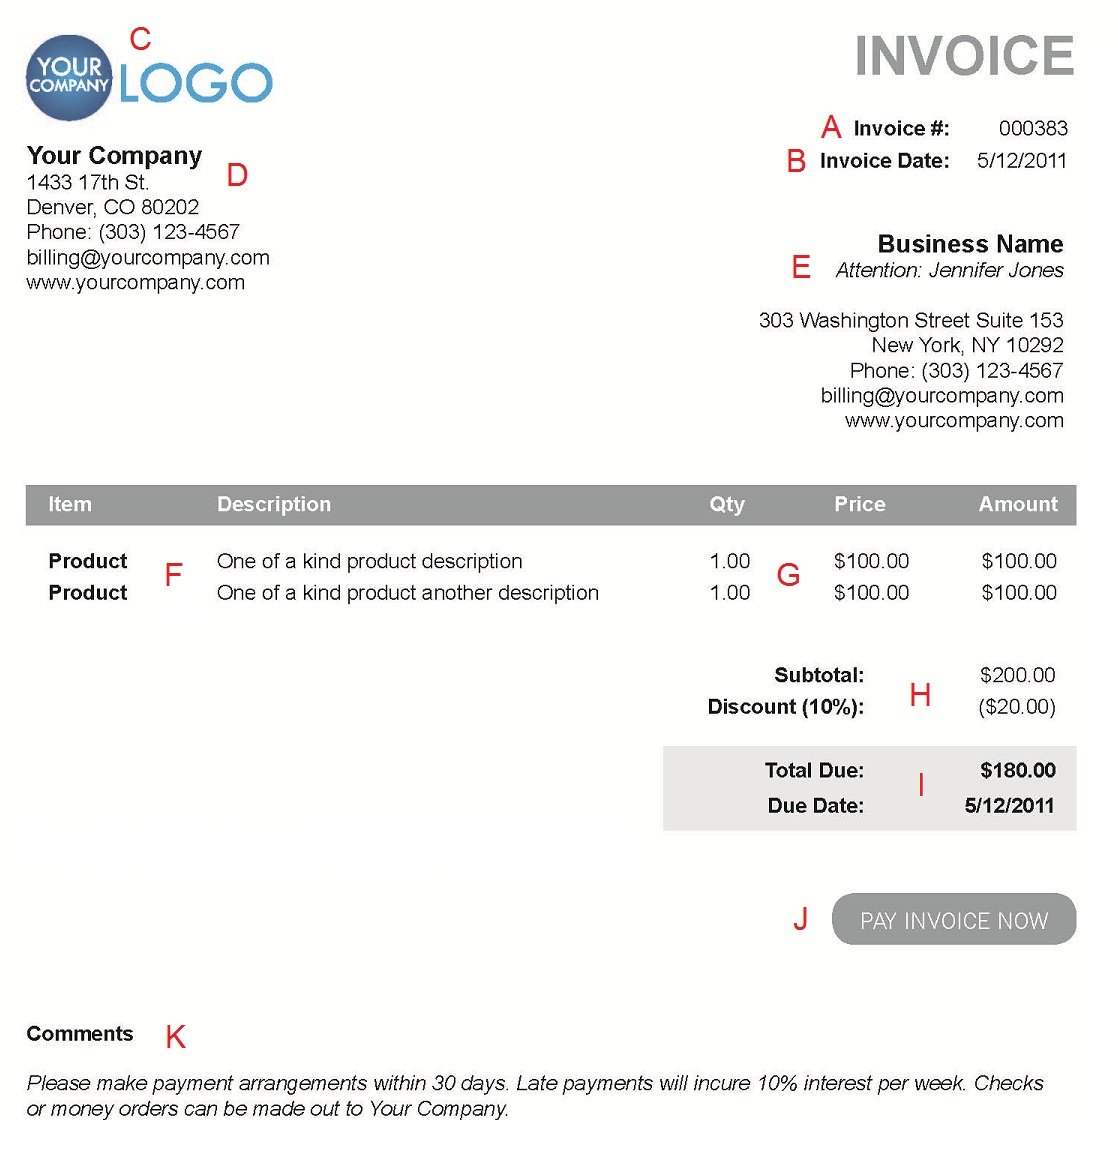 Progressiverailus  Terrific The  Different Sections Of An Electronic Payment Invoice With Hot A  With Delightful Invoice Template Printable Also Free Business Invoices In Addition Invoice Billing Software And Sample Invoice Template Excel As Well As Zoho Invoice App Additionally Service Invoice Sample From Paysimplecom With Progressiverailus  Hot The  Different Sections Of An Electronic Payment Invoice With Delightful A  And Terrific Invoice Template Printable Also Free Business Invoices In Addition Invoice Billing Software From Paysimplecom